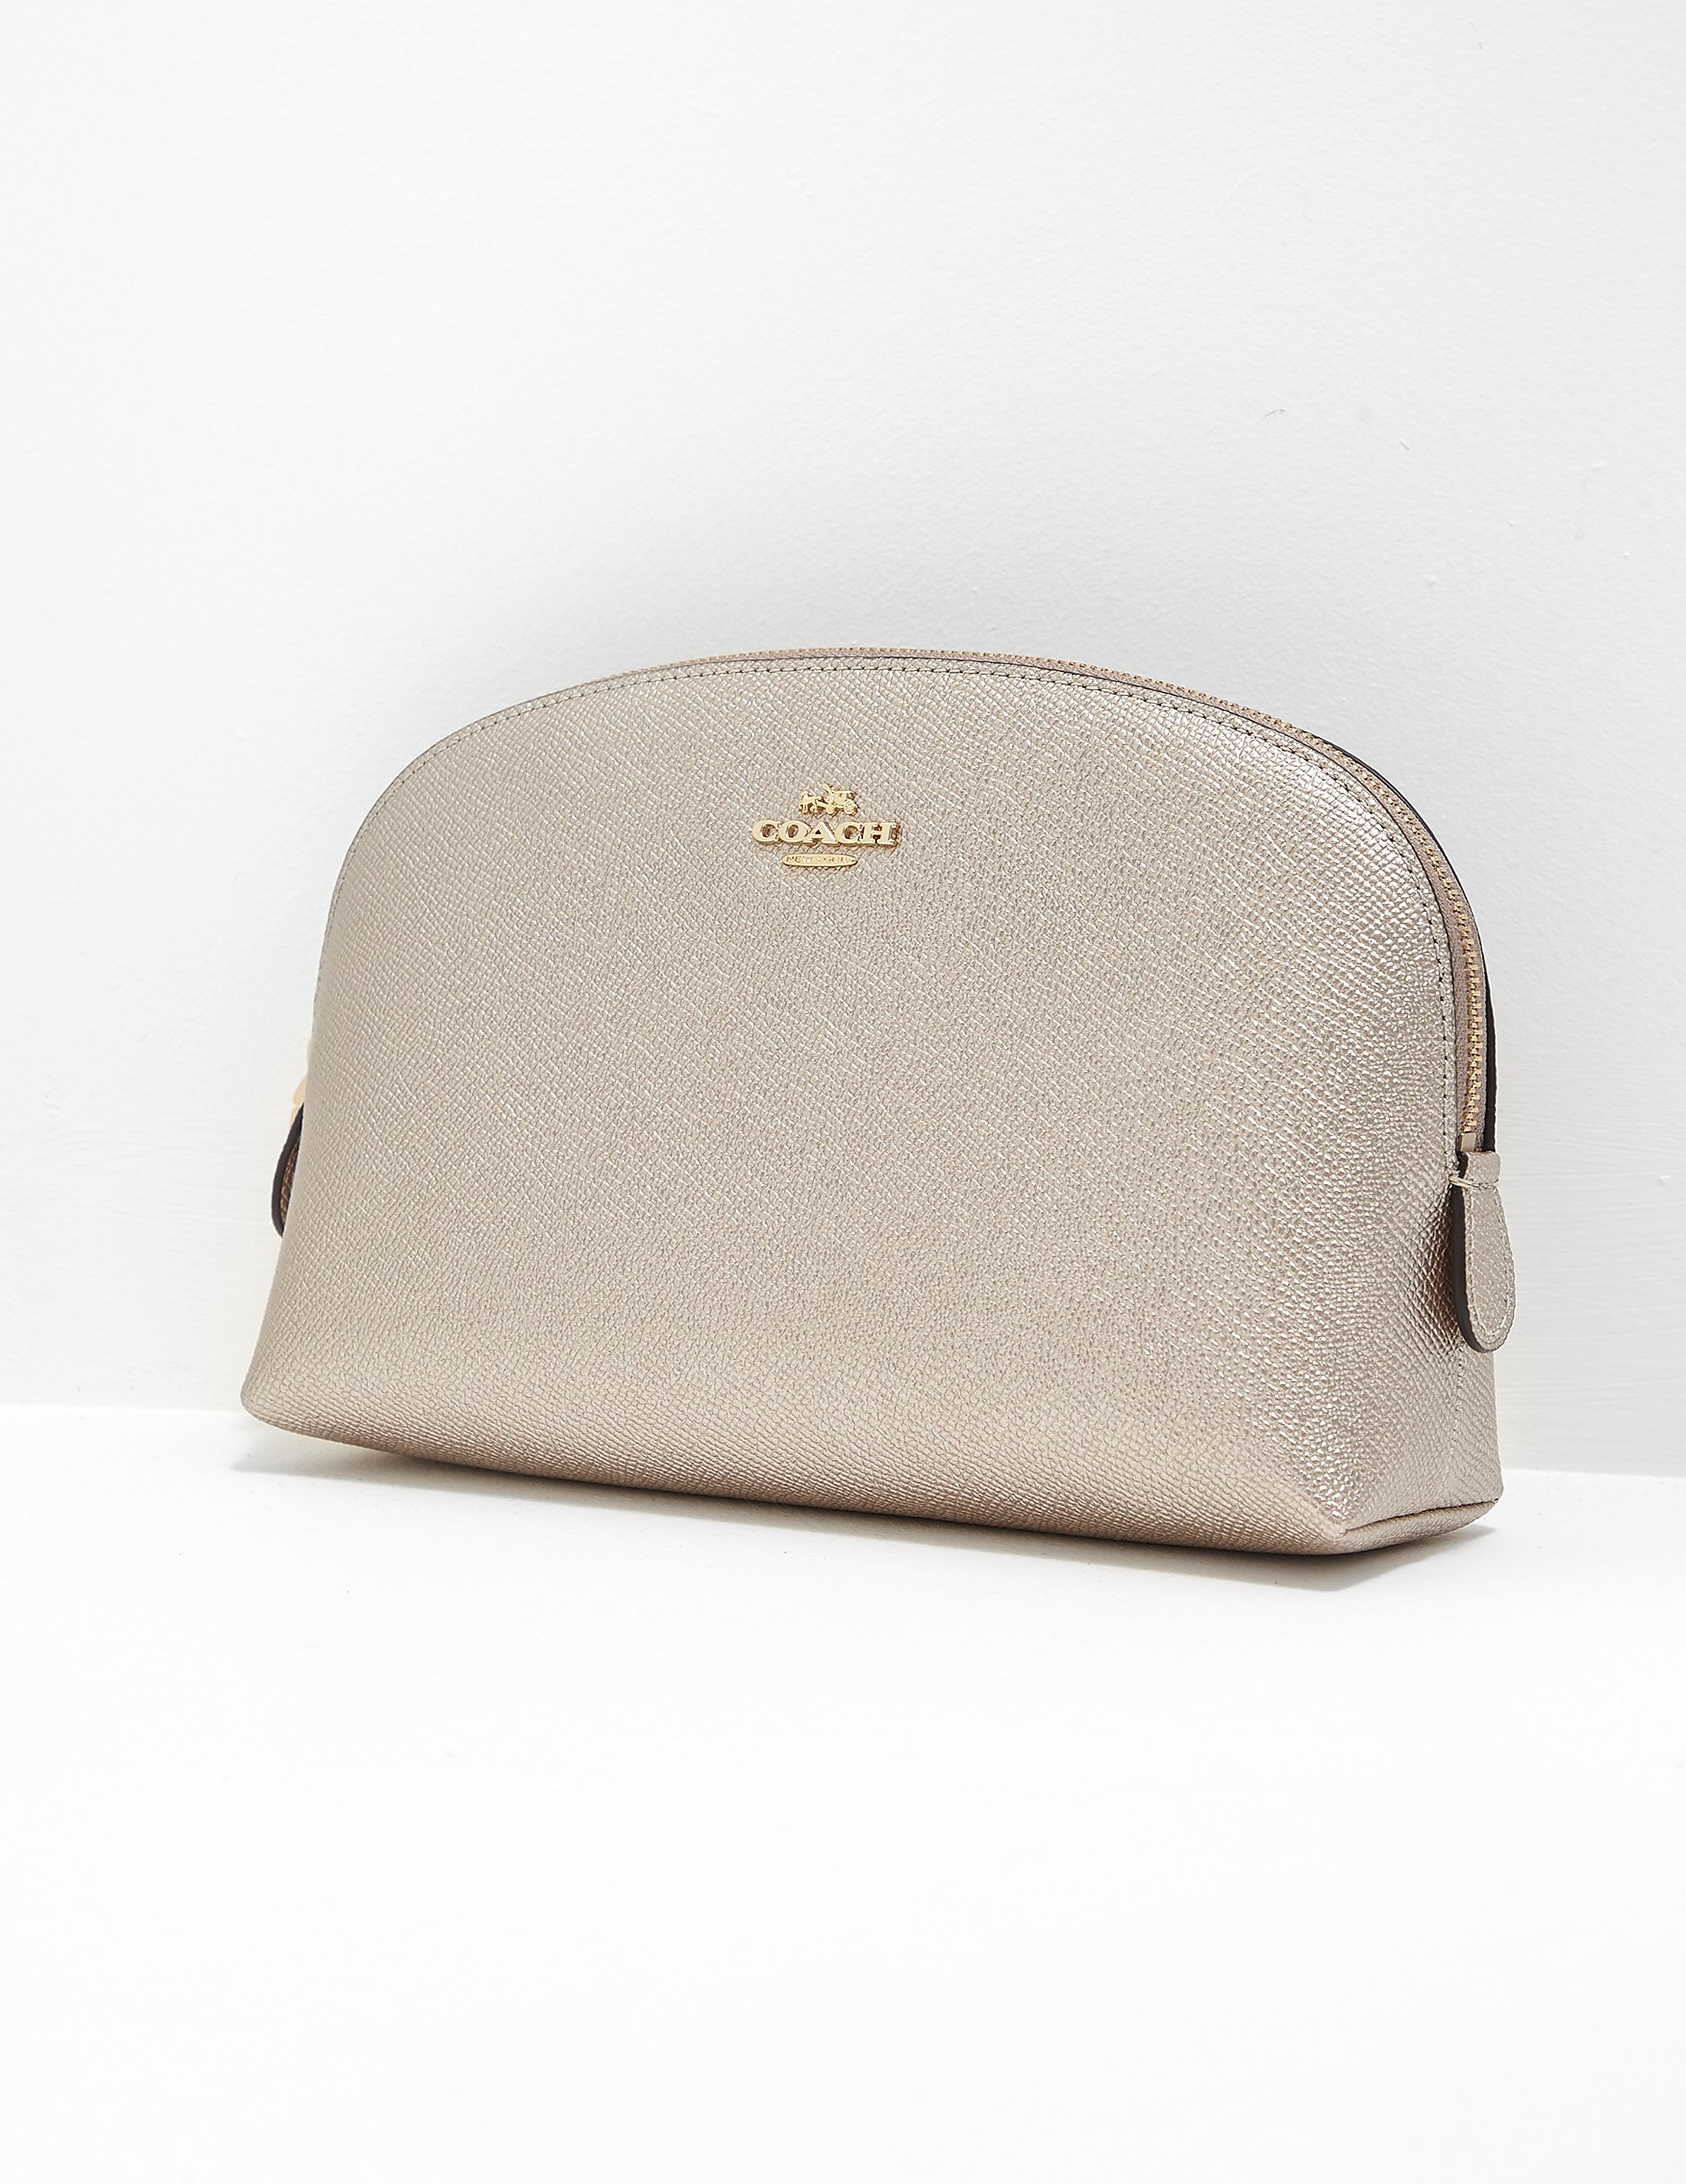 COACH Cosmetic Bag - Online Exclusive